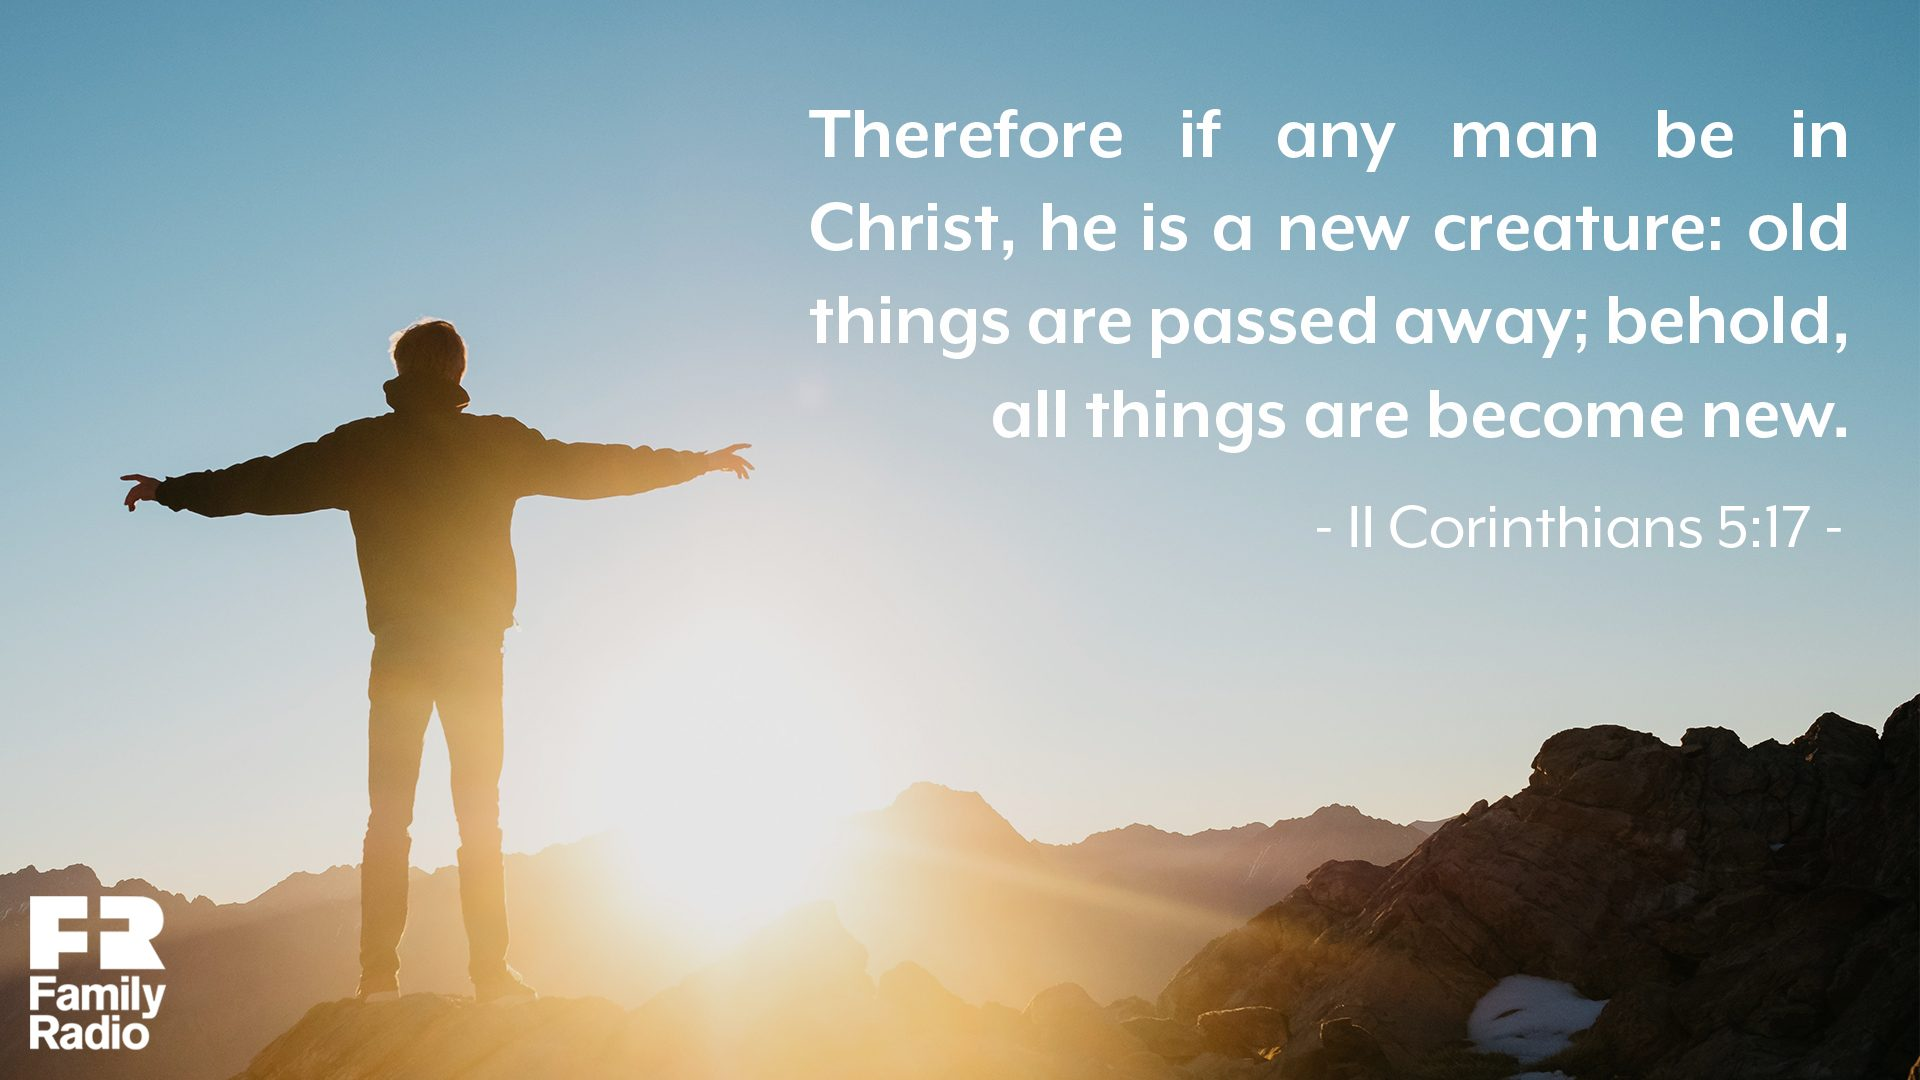 """Therefore if any man be in Christ, he is a new creature: old things are passed away; behold, all things are become new."""